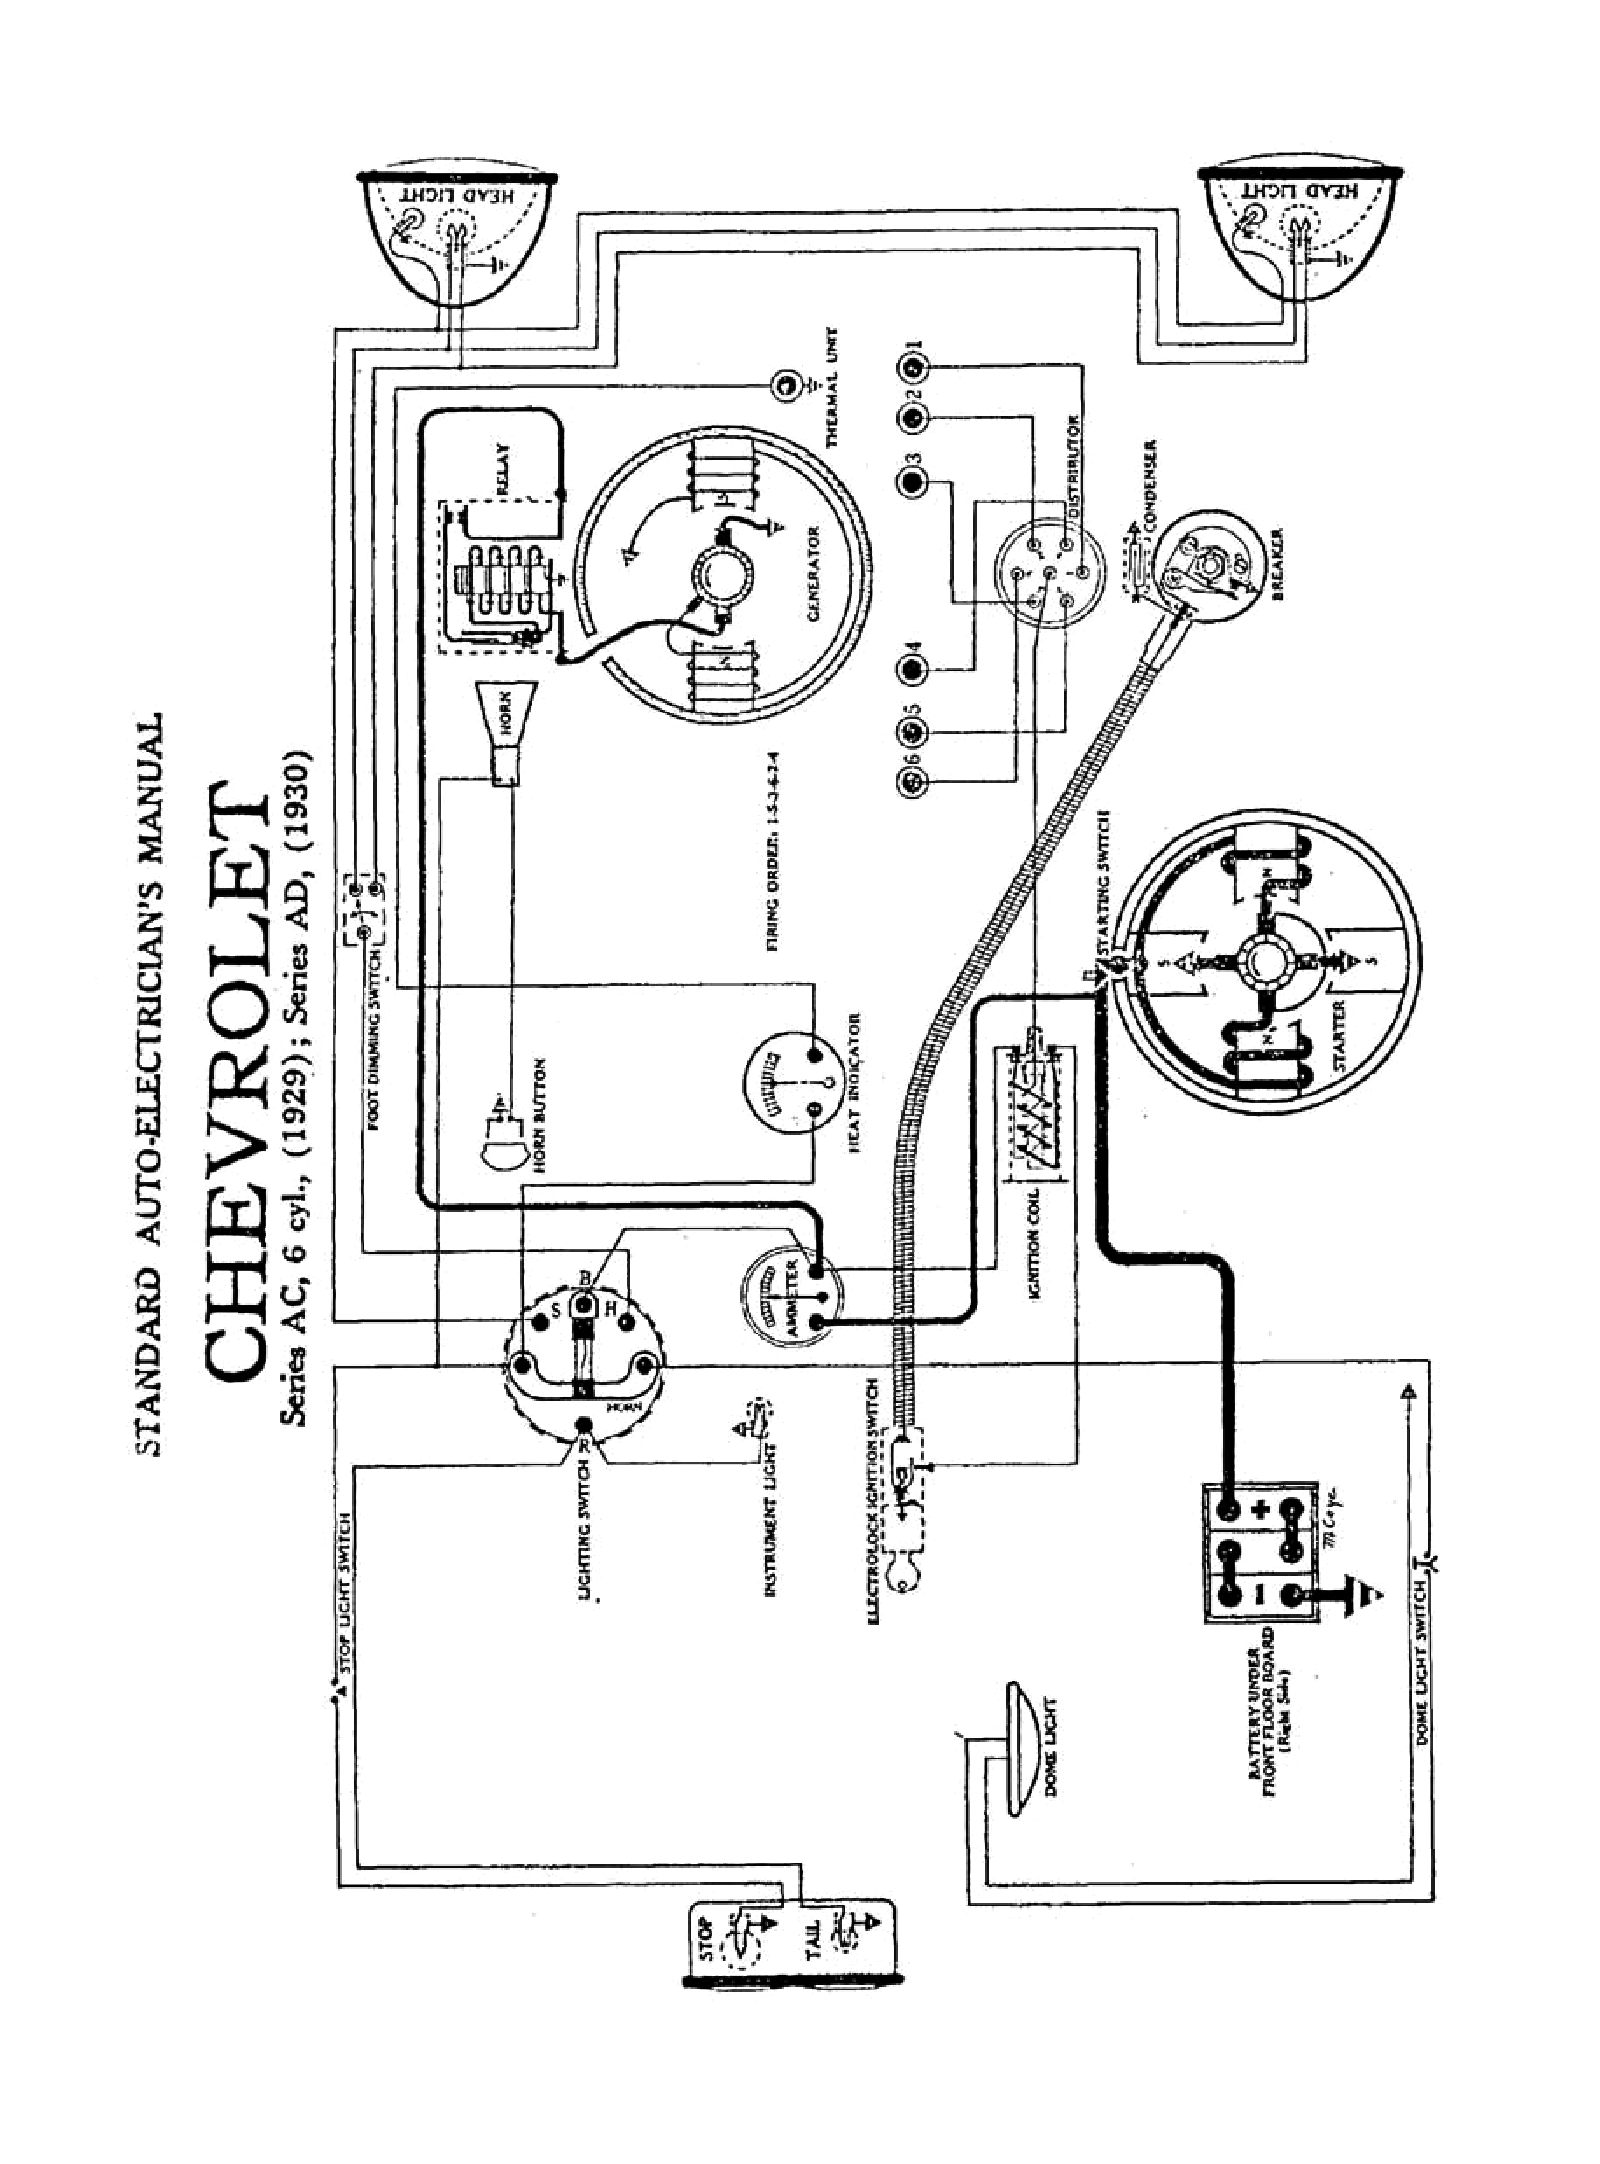 1929 ford truck wiring diagram wiring library 1930 ford roadster 1930 ford stop light wiring diagram [ 1600 x 2164 Pixel ]